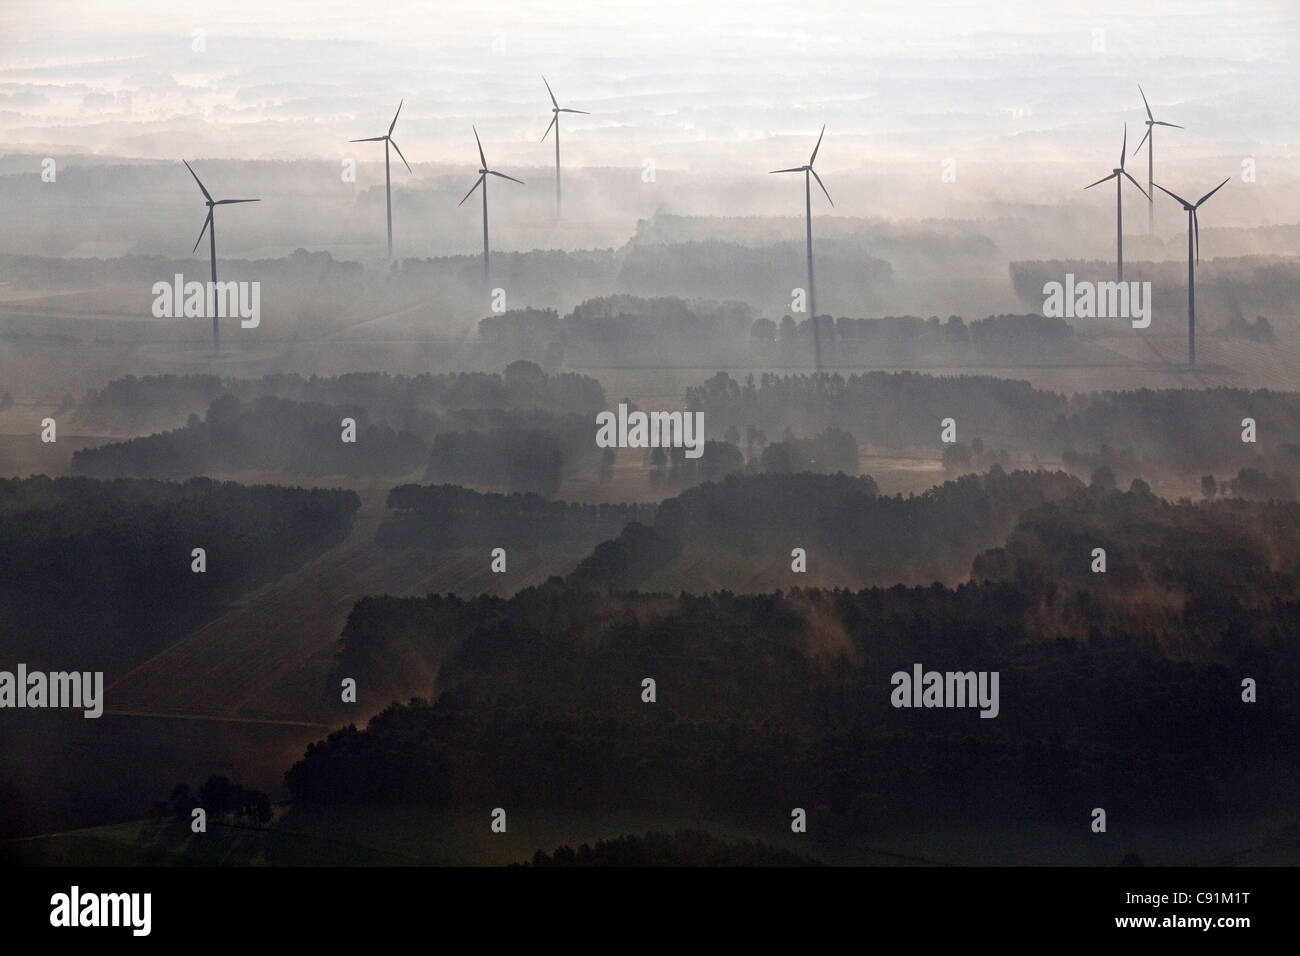 Aerial view of a wind farm in the early morning mist, Lower Saxony, Northern Germany - Stock Image